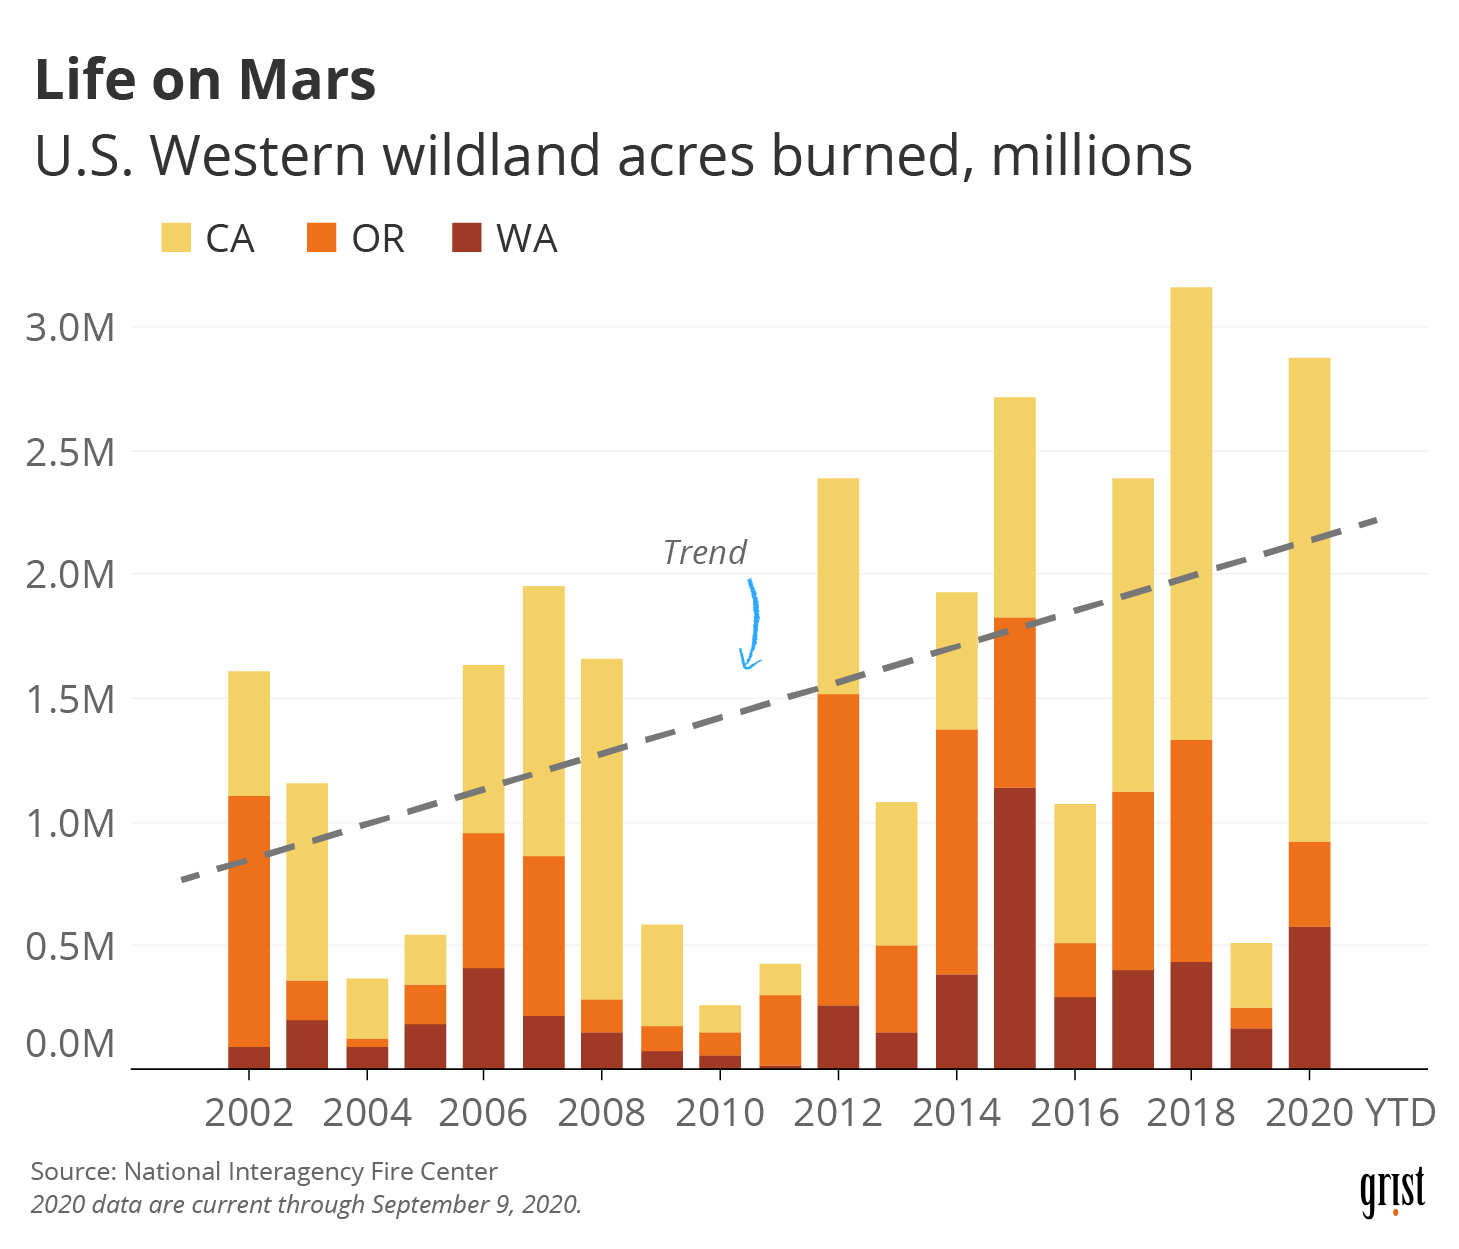 A bar chart showing U.S. Western wildland acres burned between 2002 and 2020 (YTD). A trend-line shows that acres burned have increased to approximately 3 million acres annually (up from about 1 million acres).